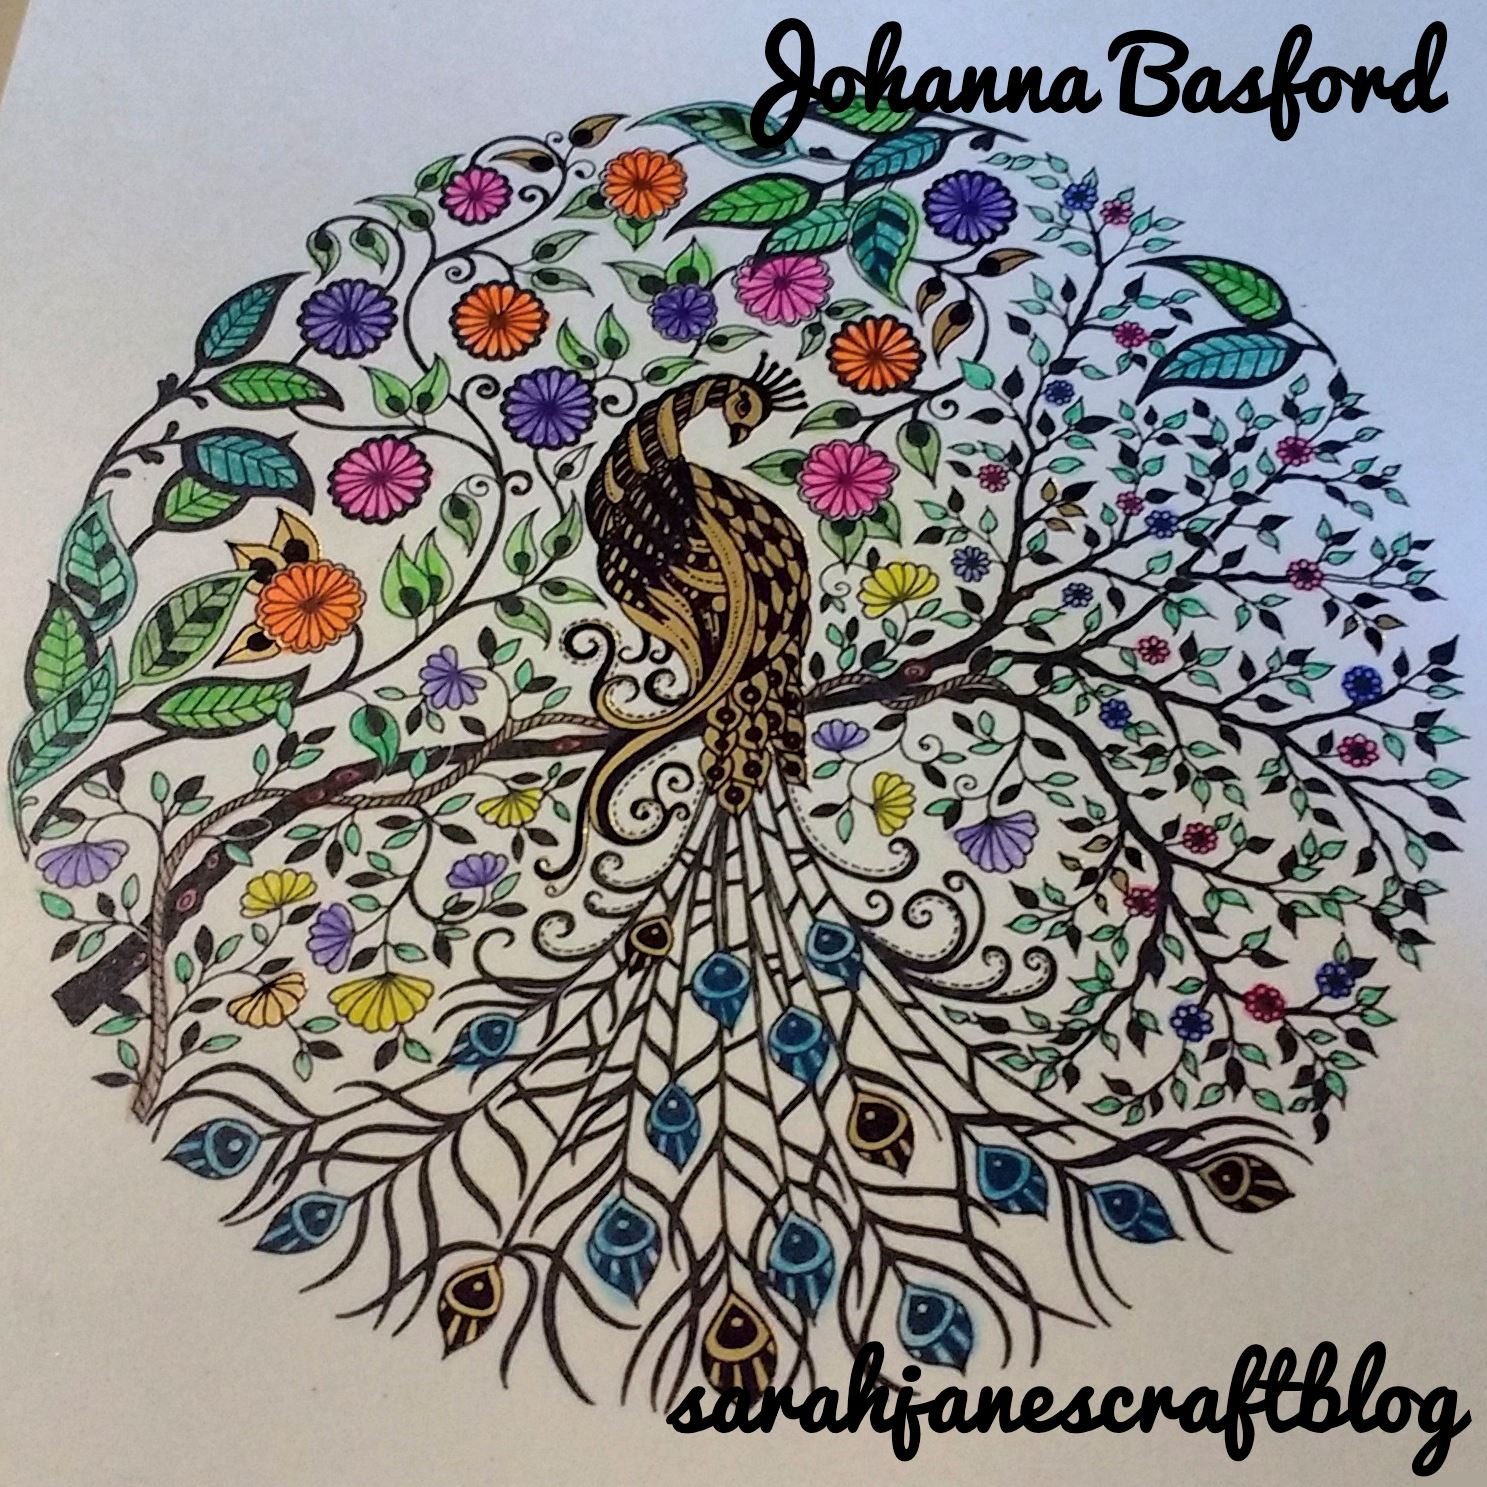 The secret garden coloring book barnes and noble - If You Look Closely You Ll See I Colored Out Of The Lines A Bit On This One The Design Is Tiny Only About 2 1 2 Inches Across So You Ll Need Good Sharp